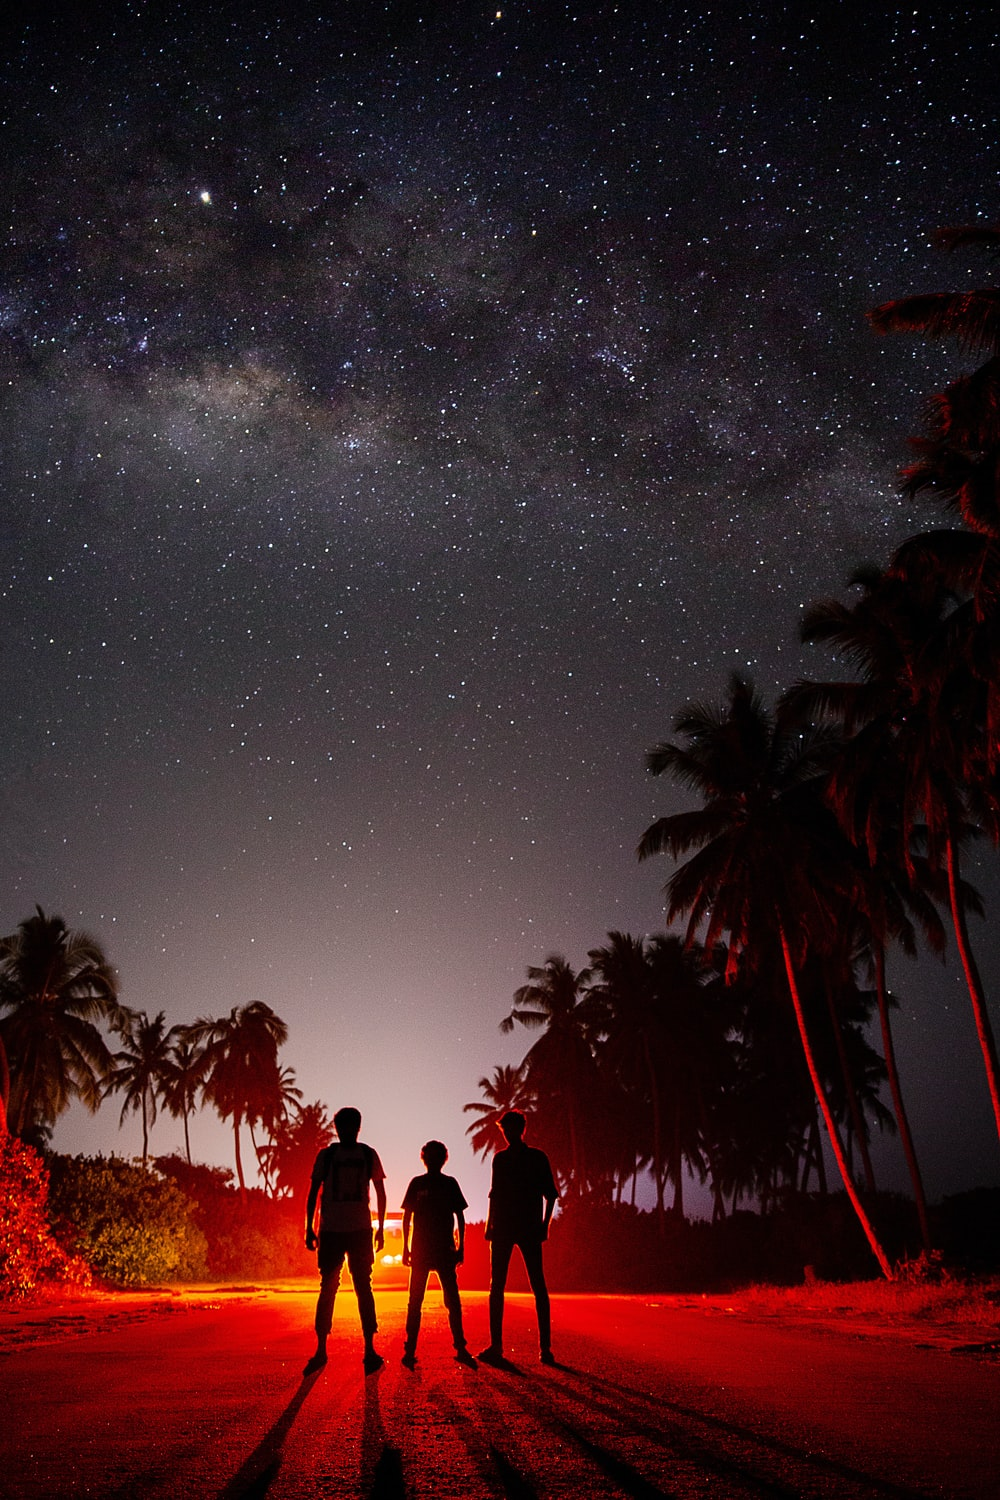 silhouette of three people standing during night time